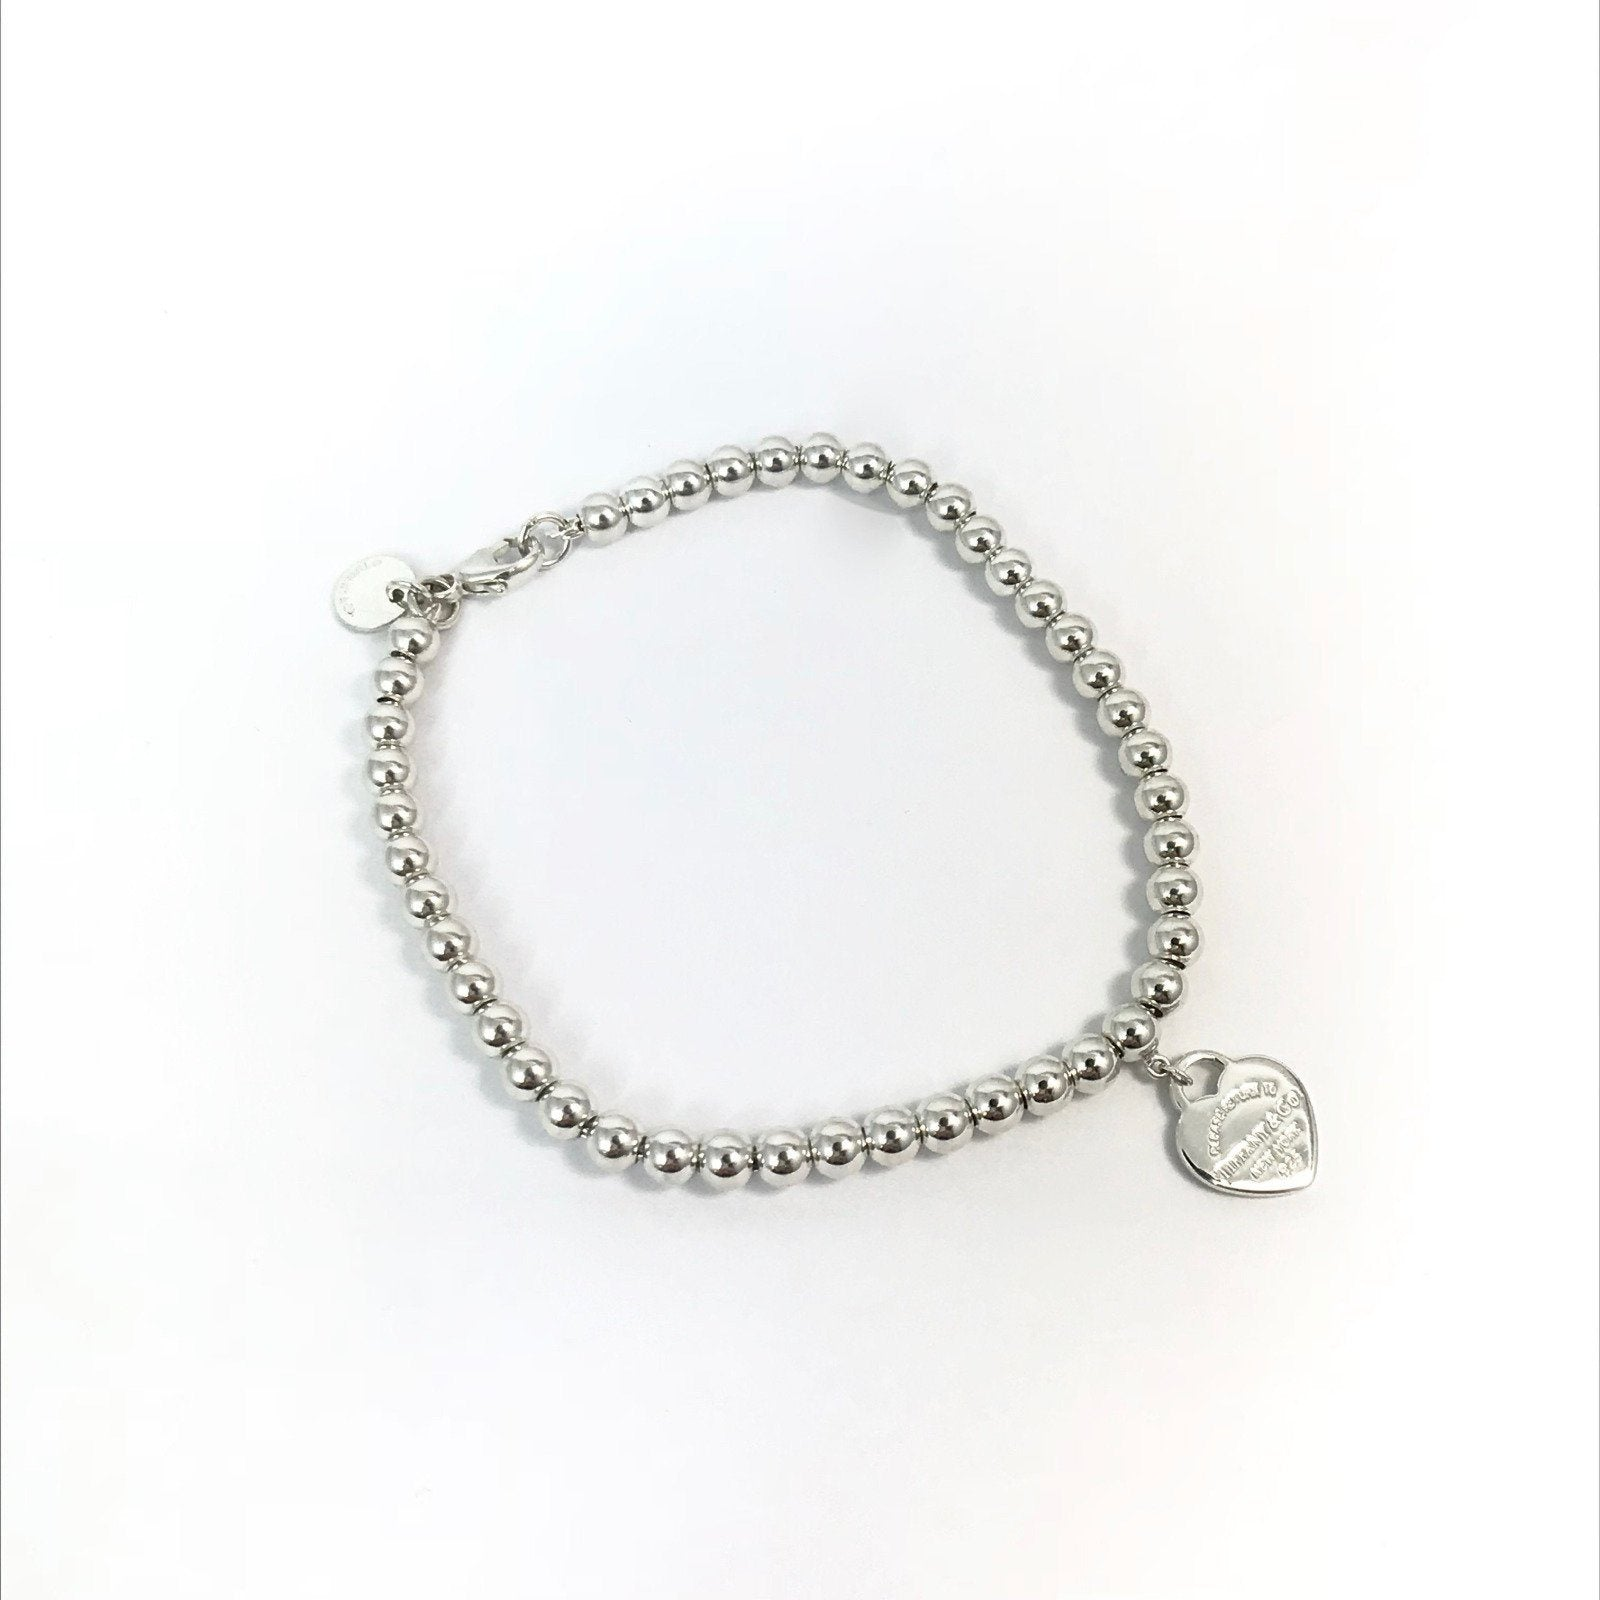 c84c9331a Tiffany & Co. Return To Tiffany Mini Heart Tag Bead Bracelet in Sterling  Silver Bracelets ...